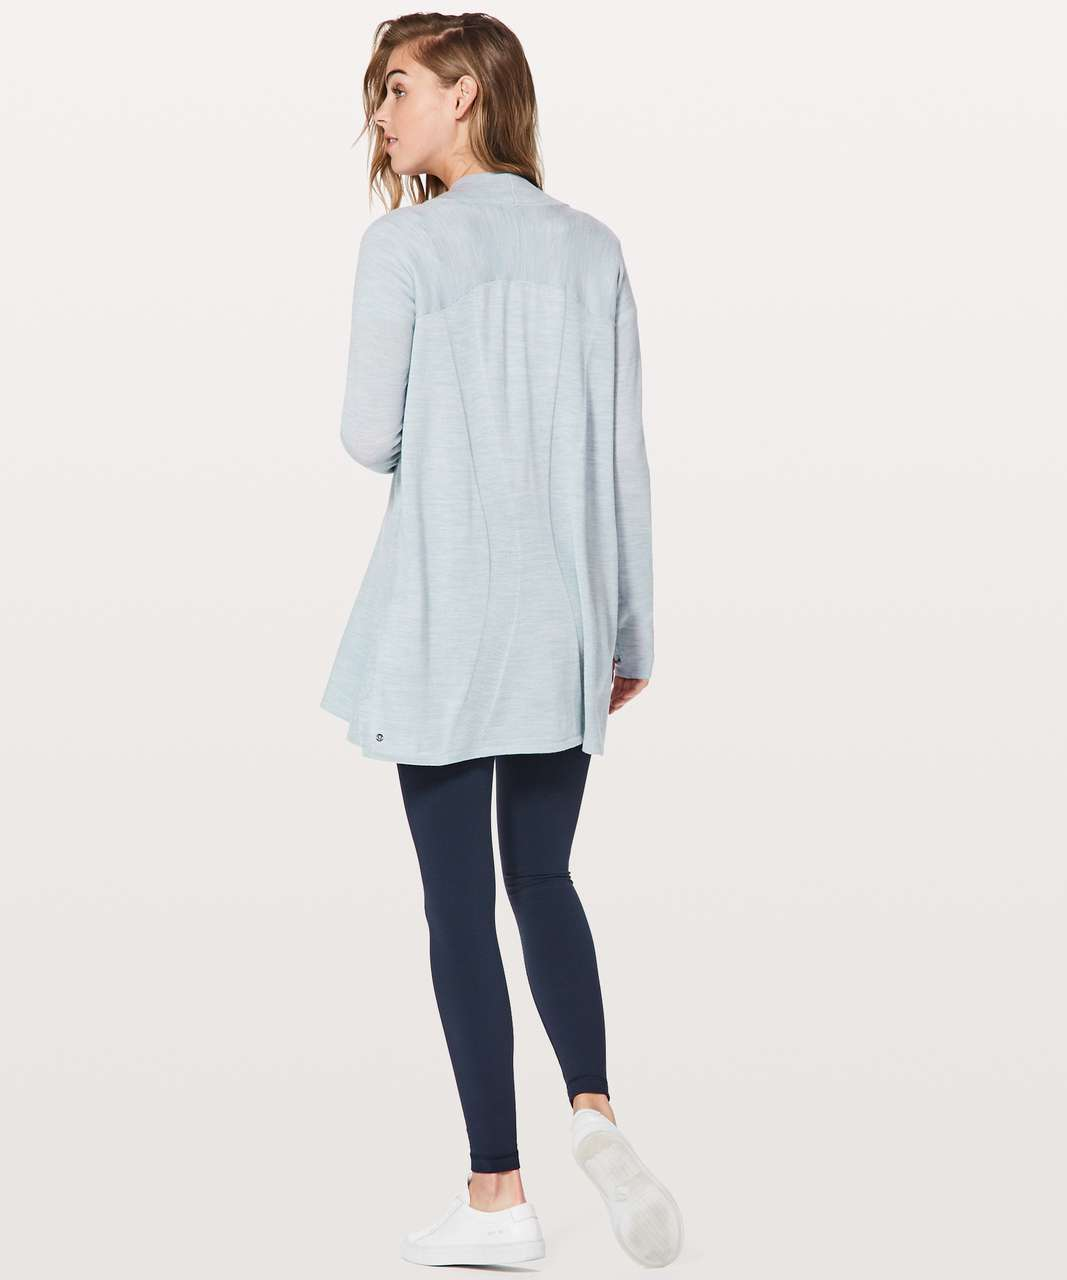 Lululemon Blissful Zen Sweater - Heathered Starlight